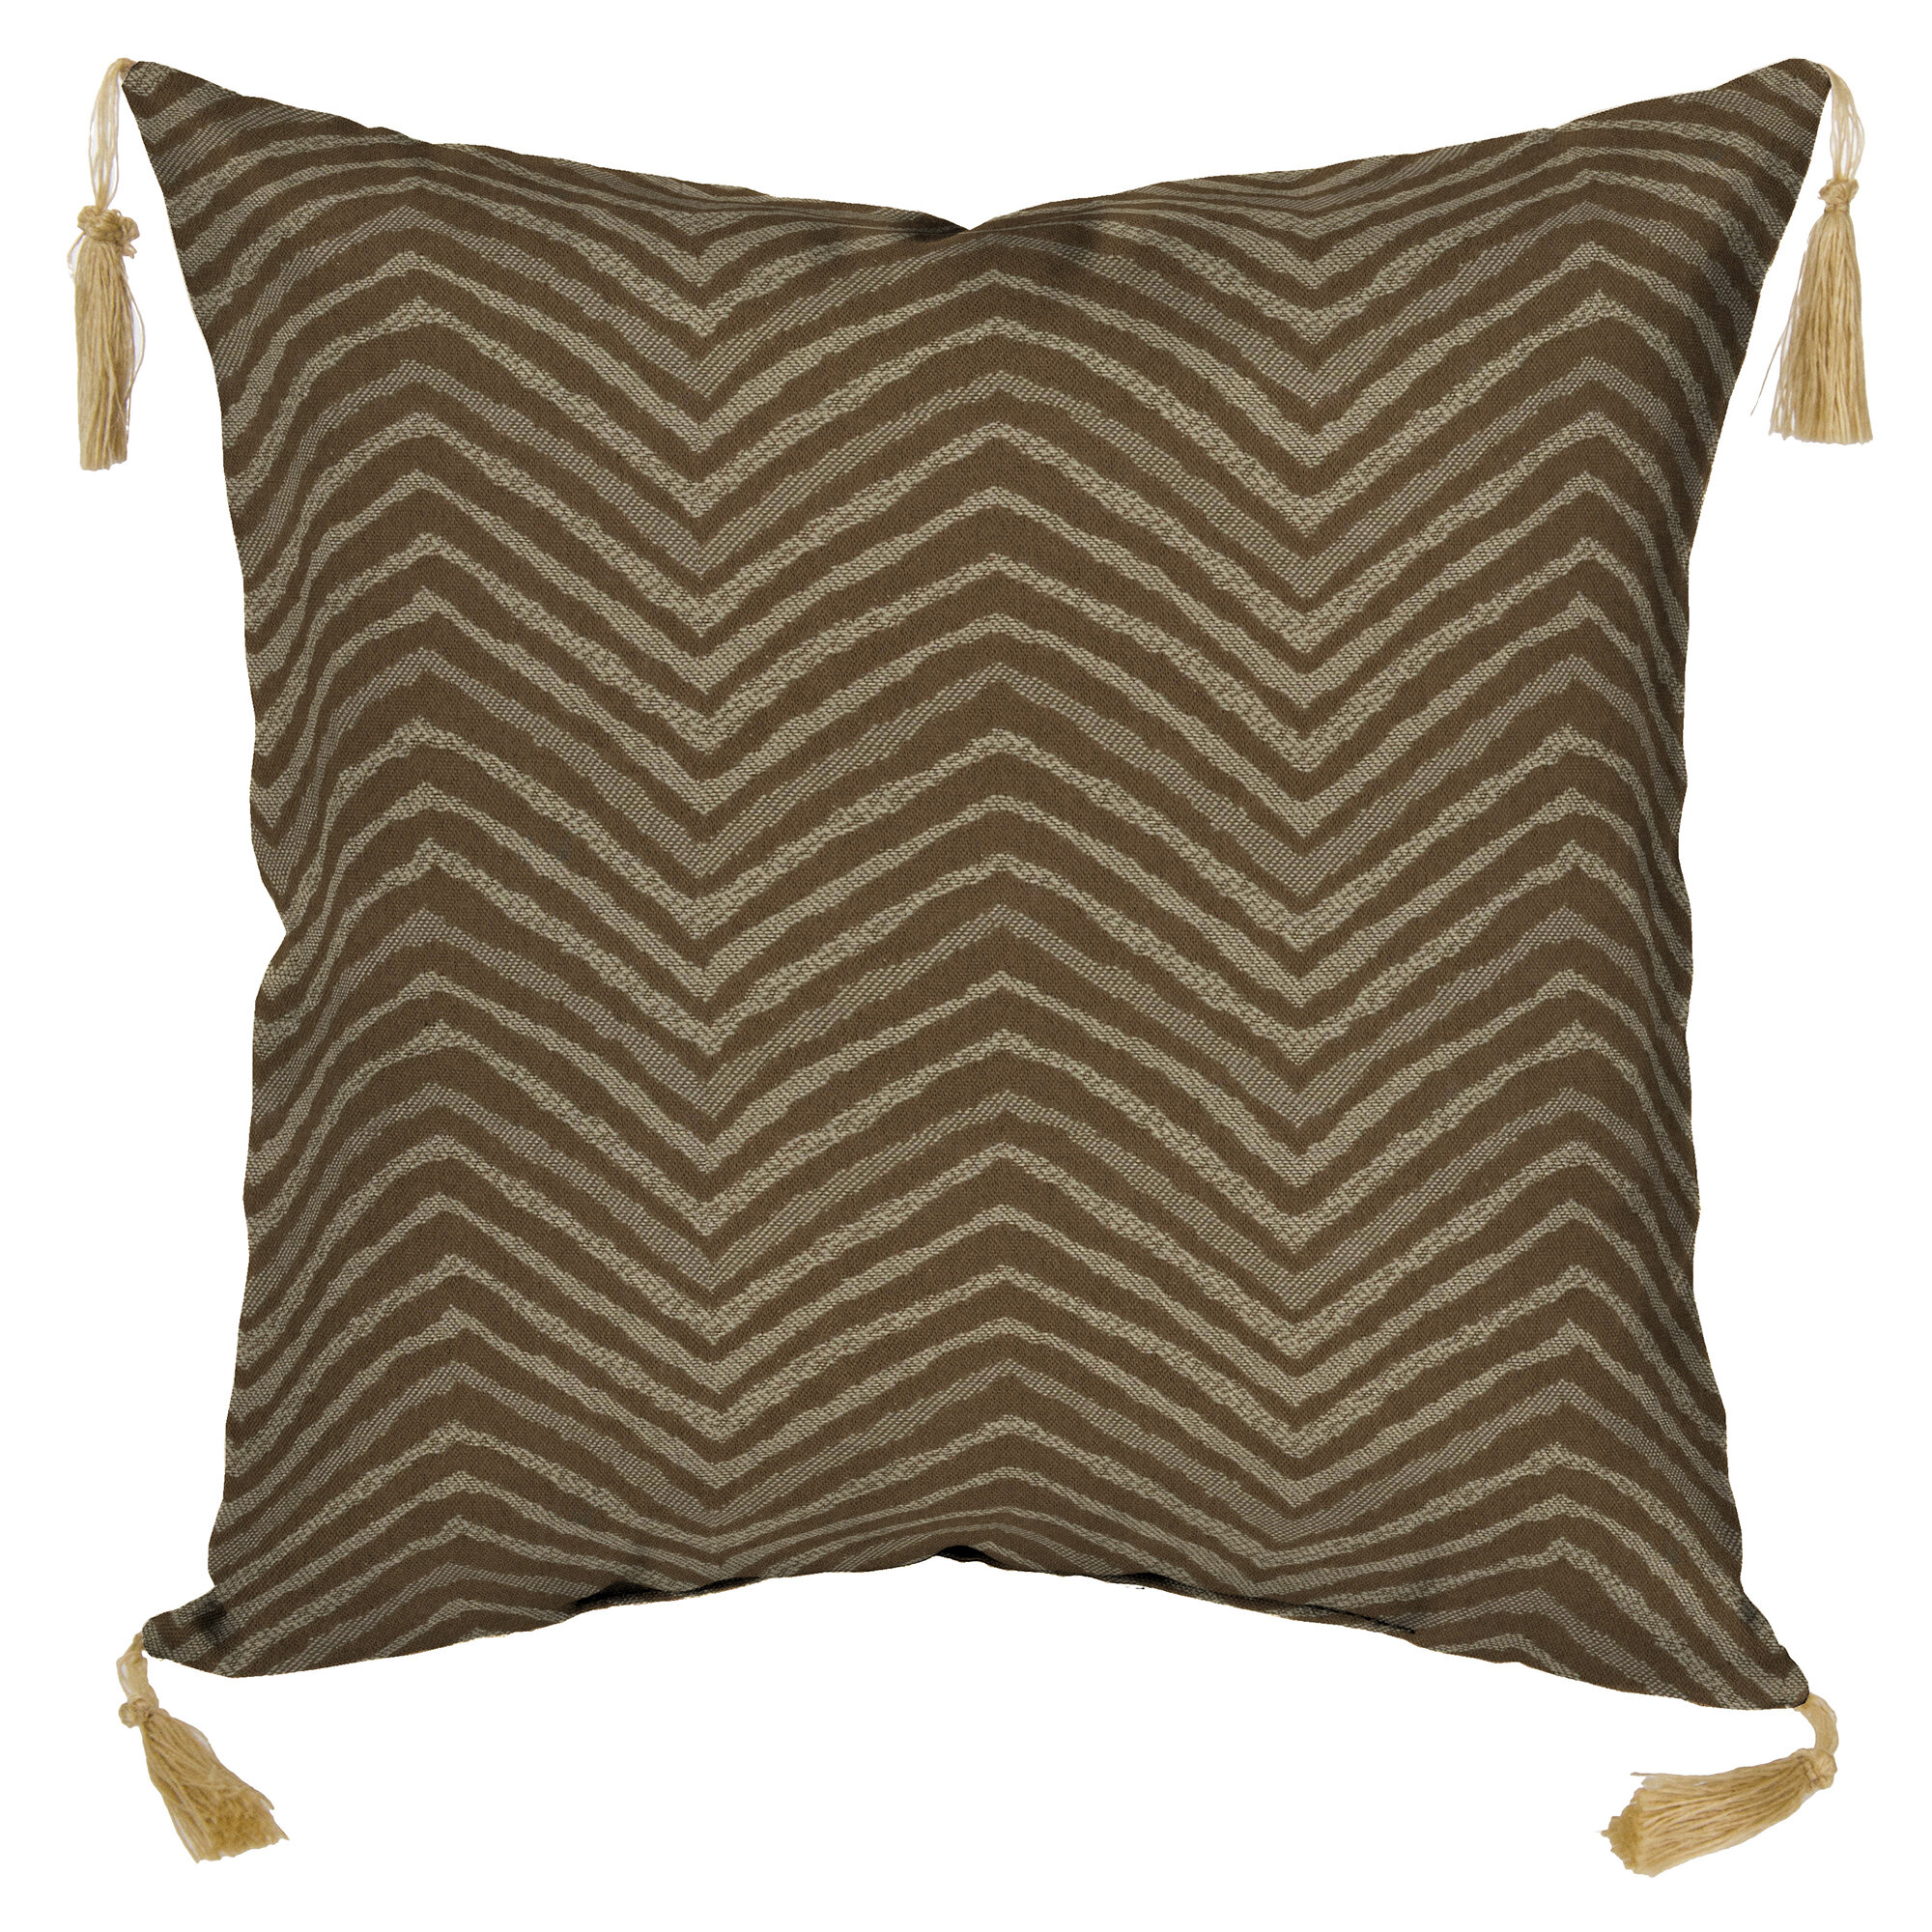 Bombayoutdoors Zebra Toss Outdoor Lumbar Pillow Wayfair